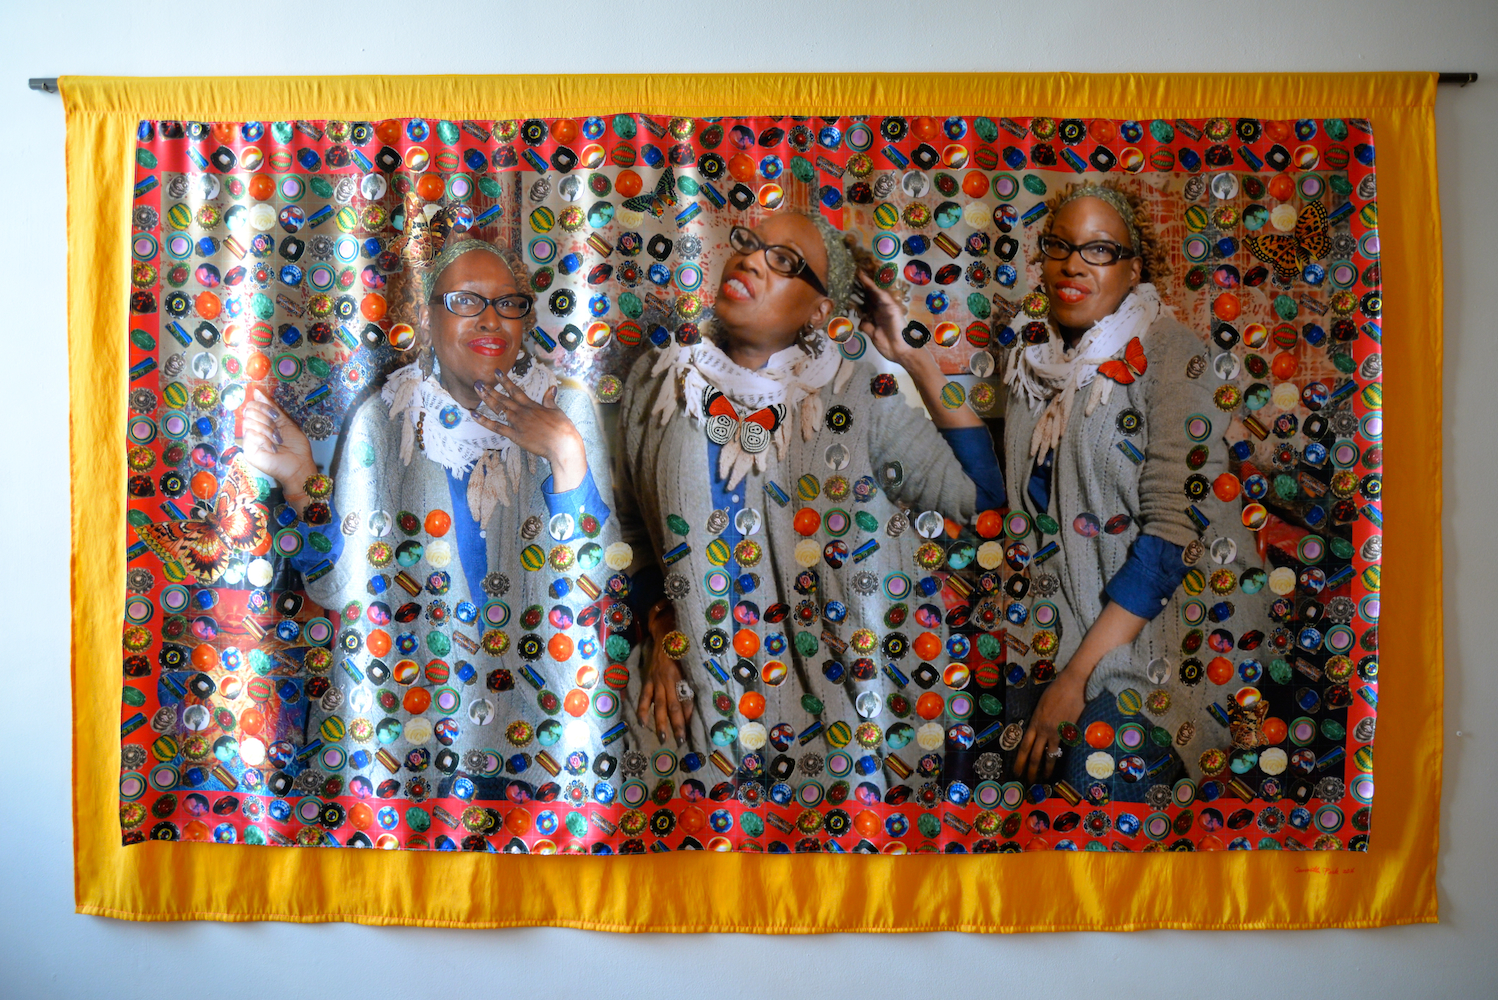 """The Secret Life of Beads, Dye sublimation print on fabric with fabric backing, 54.5"""" x 90"""", 2016"""